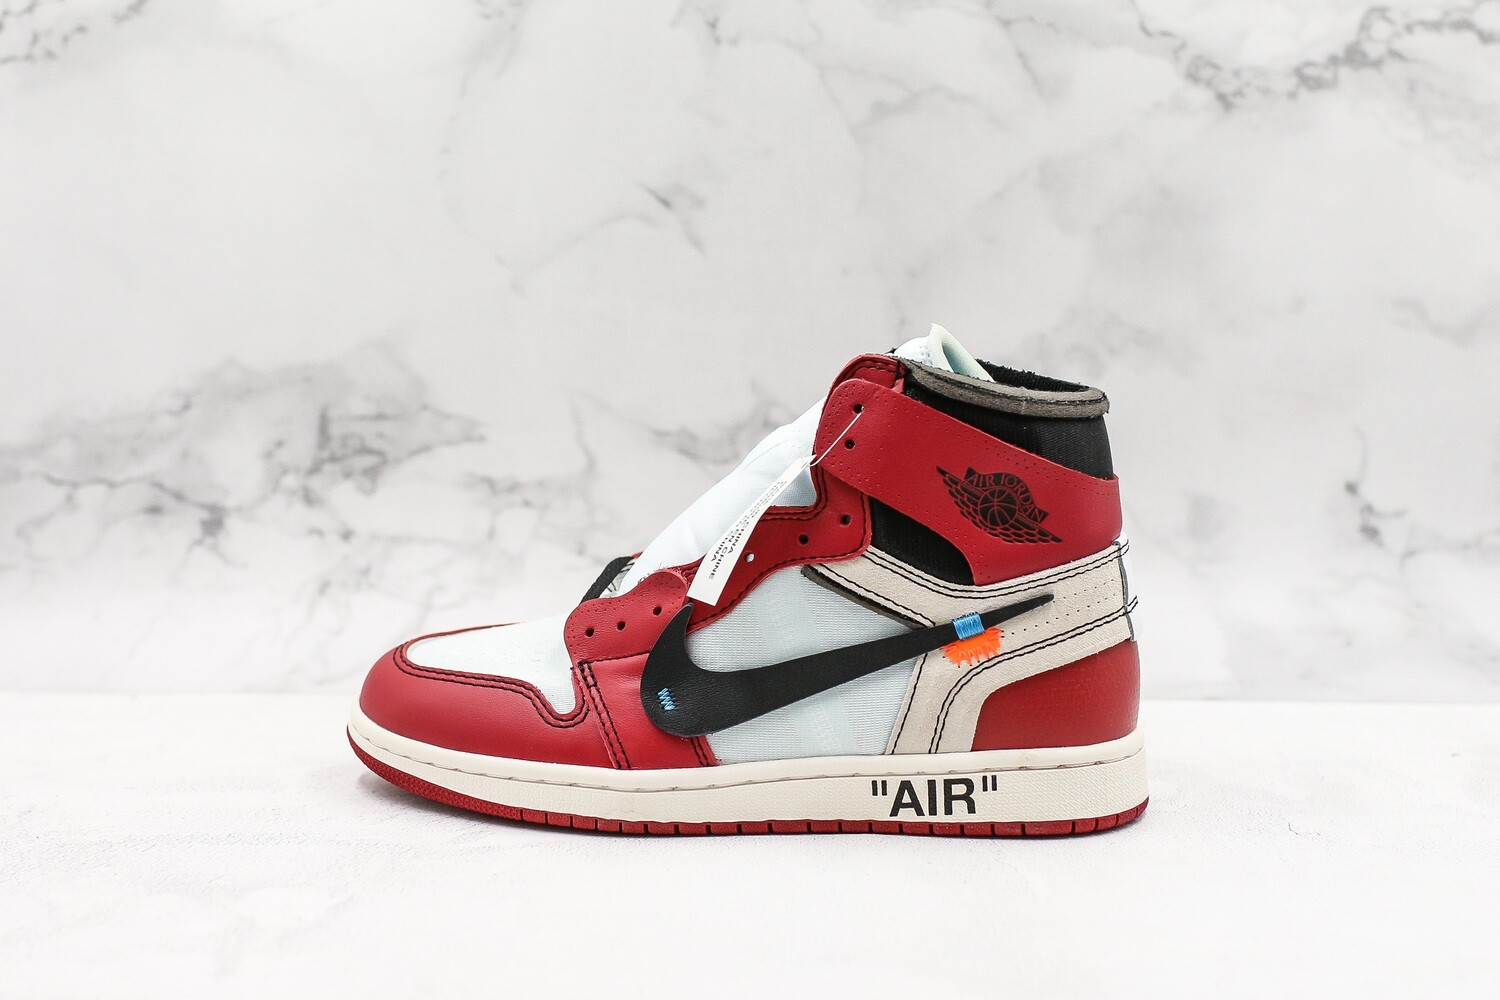 Men's/Women's Air Jordan 1 AJ1 Retro High Off-White Chicago  Basketball Shoes Casual Life sneakers